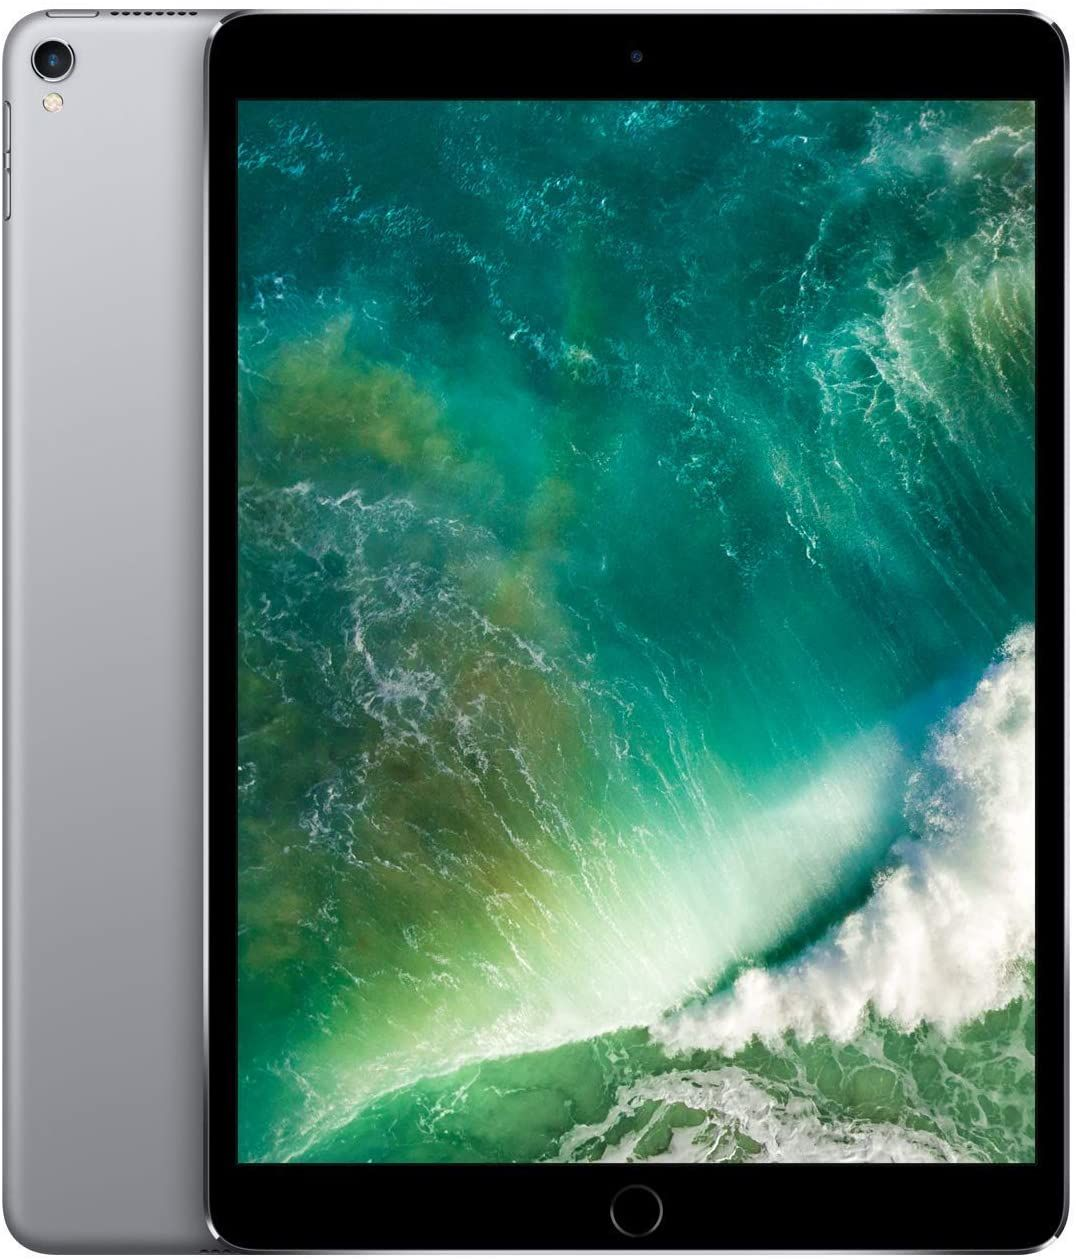 Apple iPad Pro (2017) 10.5